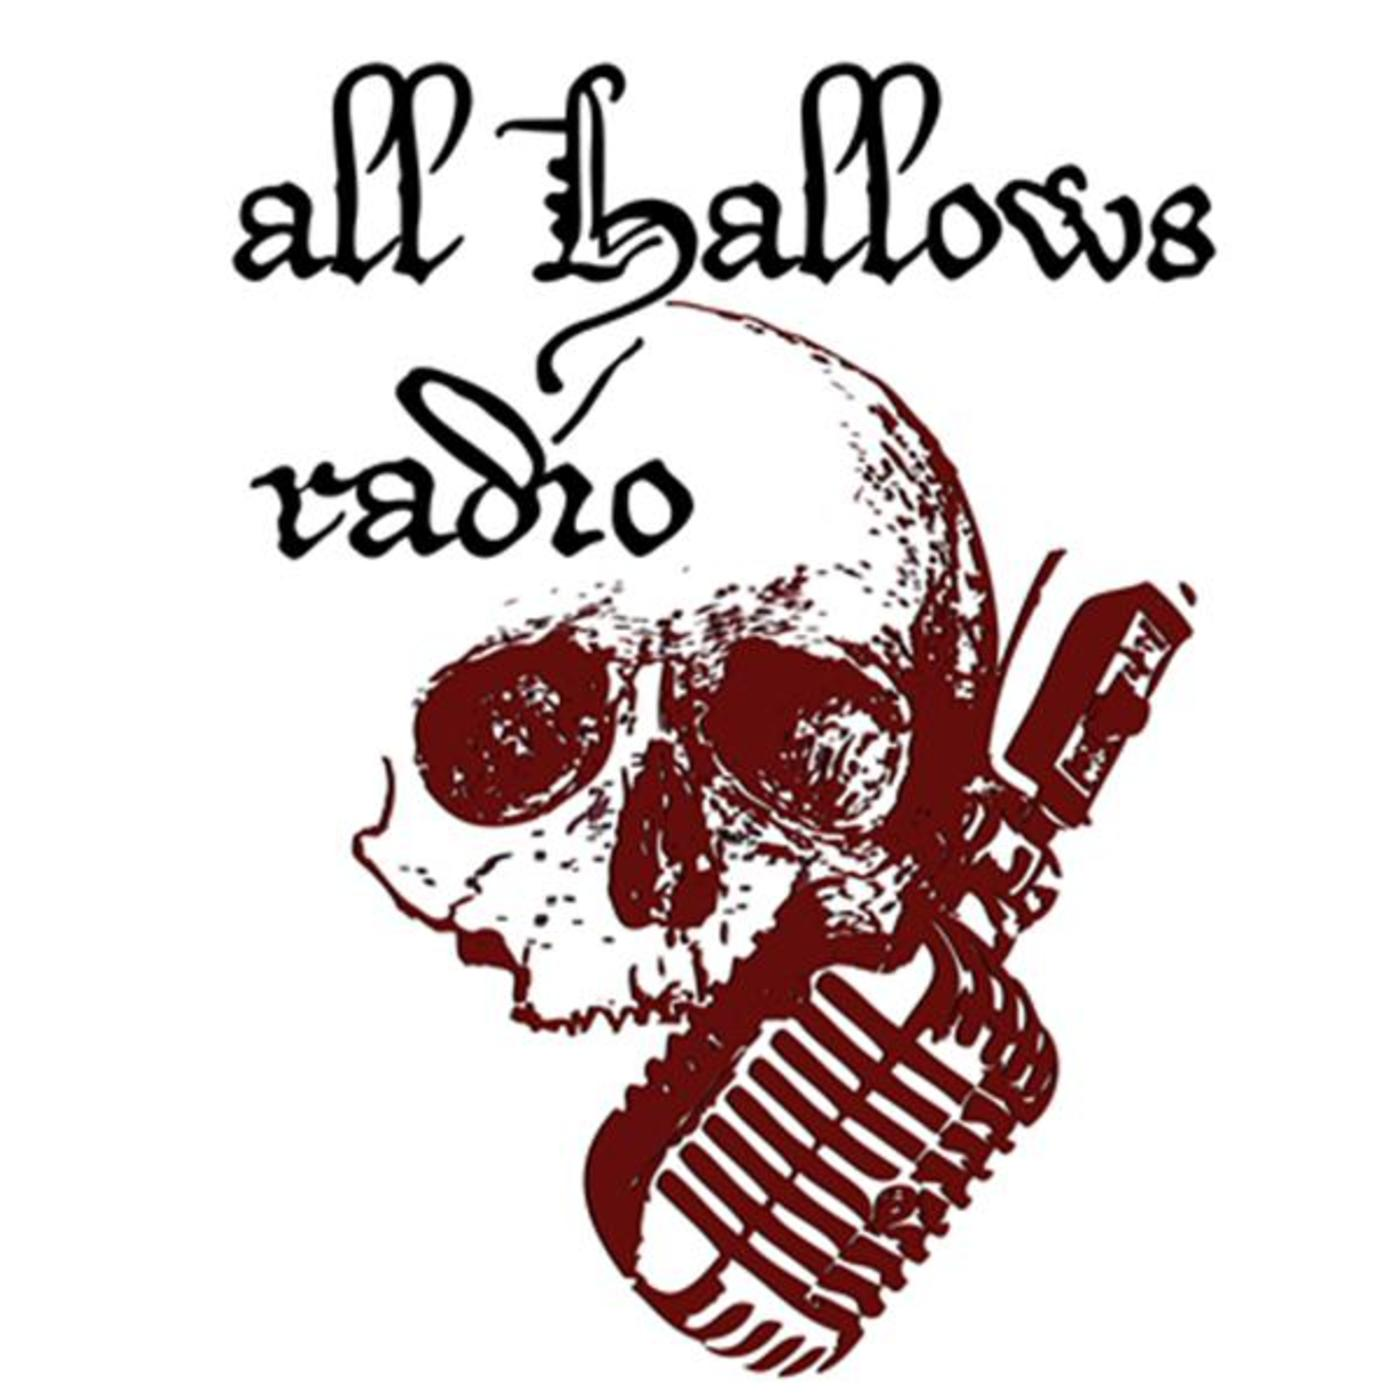 All Hallows Radio